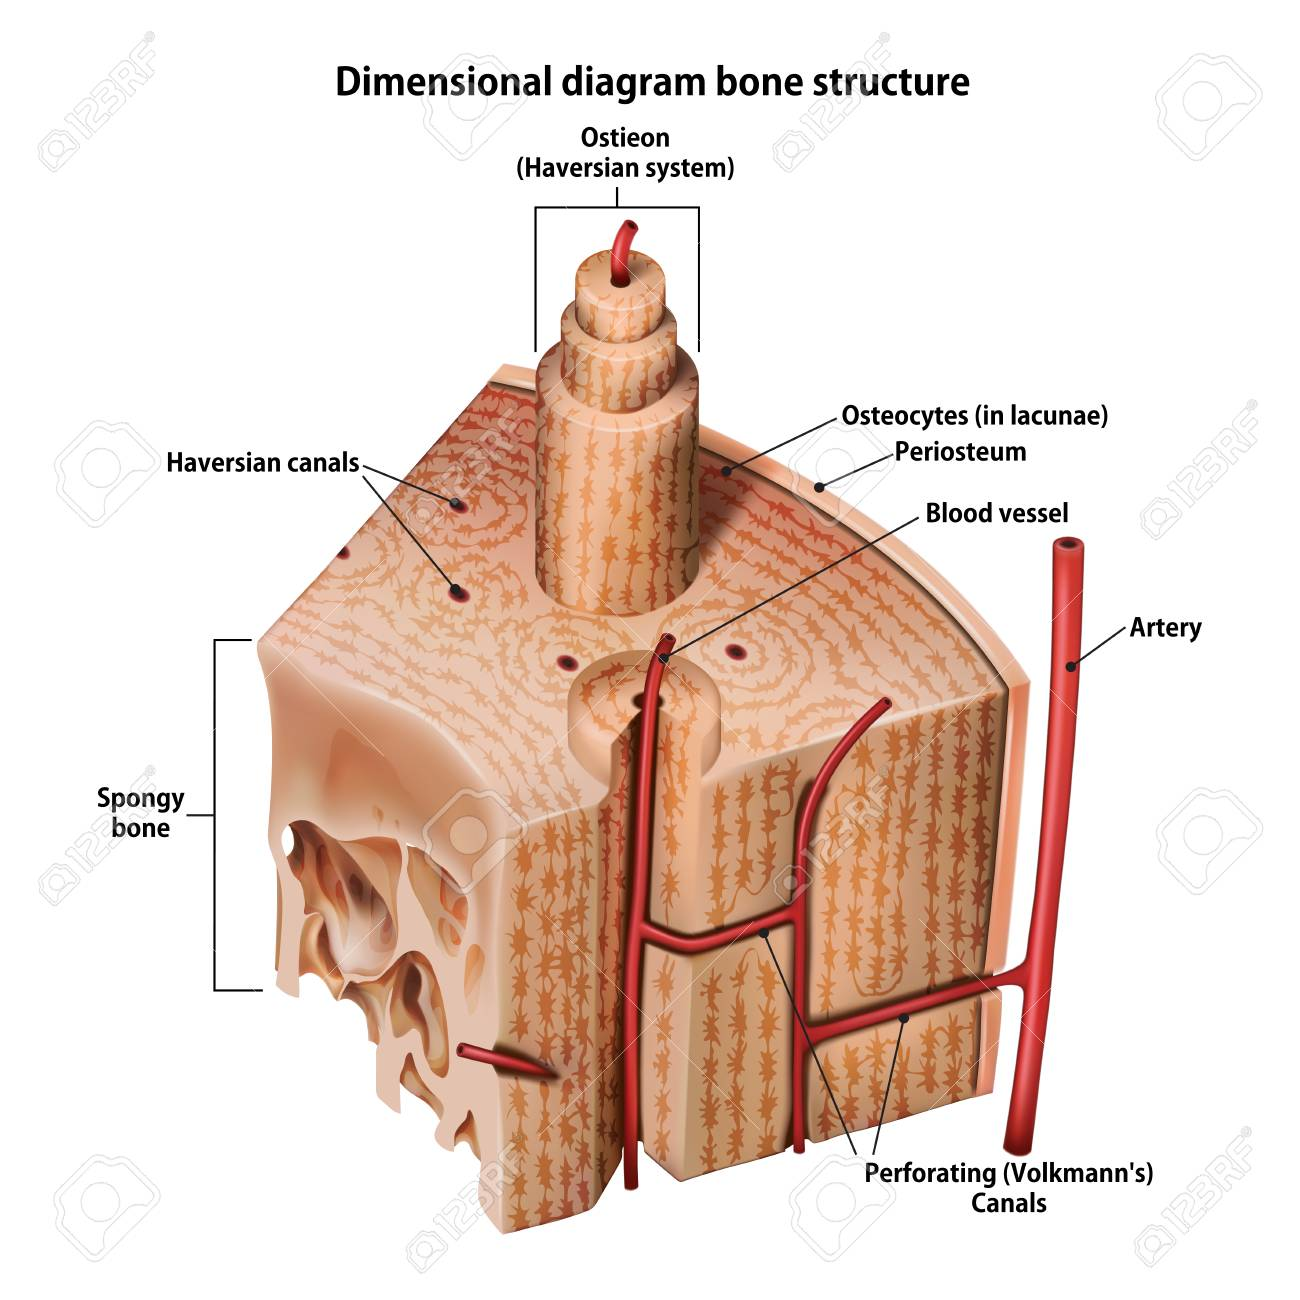 hight resolution of three dimensional diagram bone structure stock vector 102959492